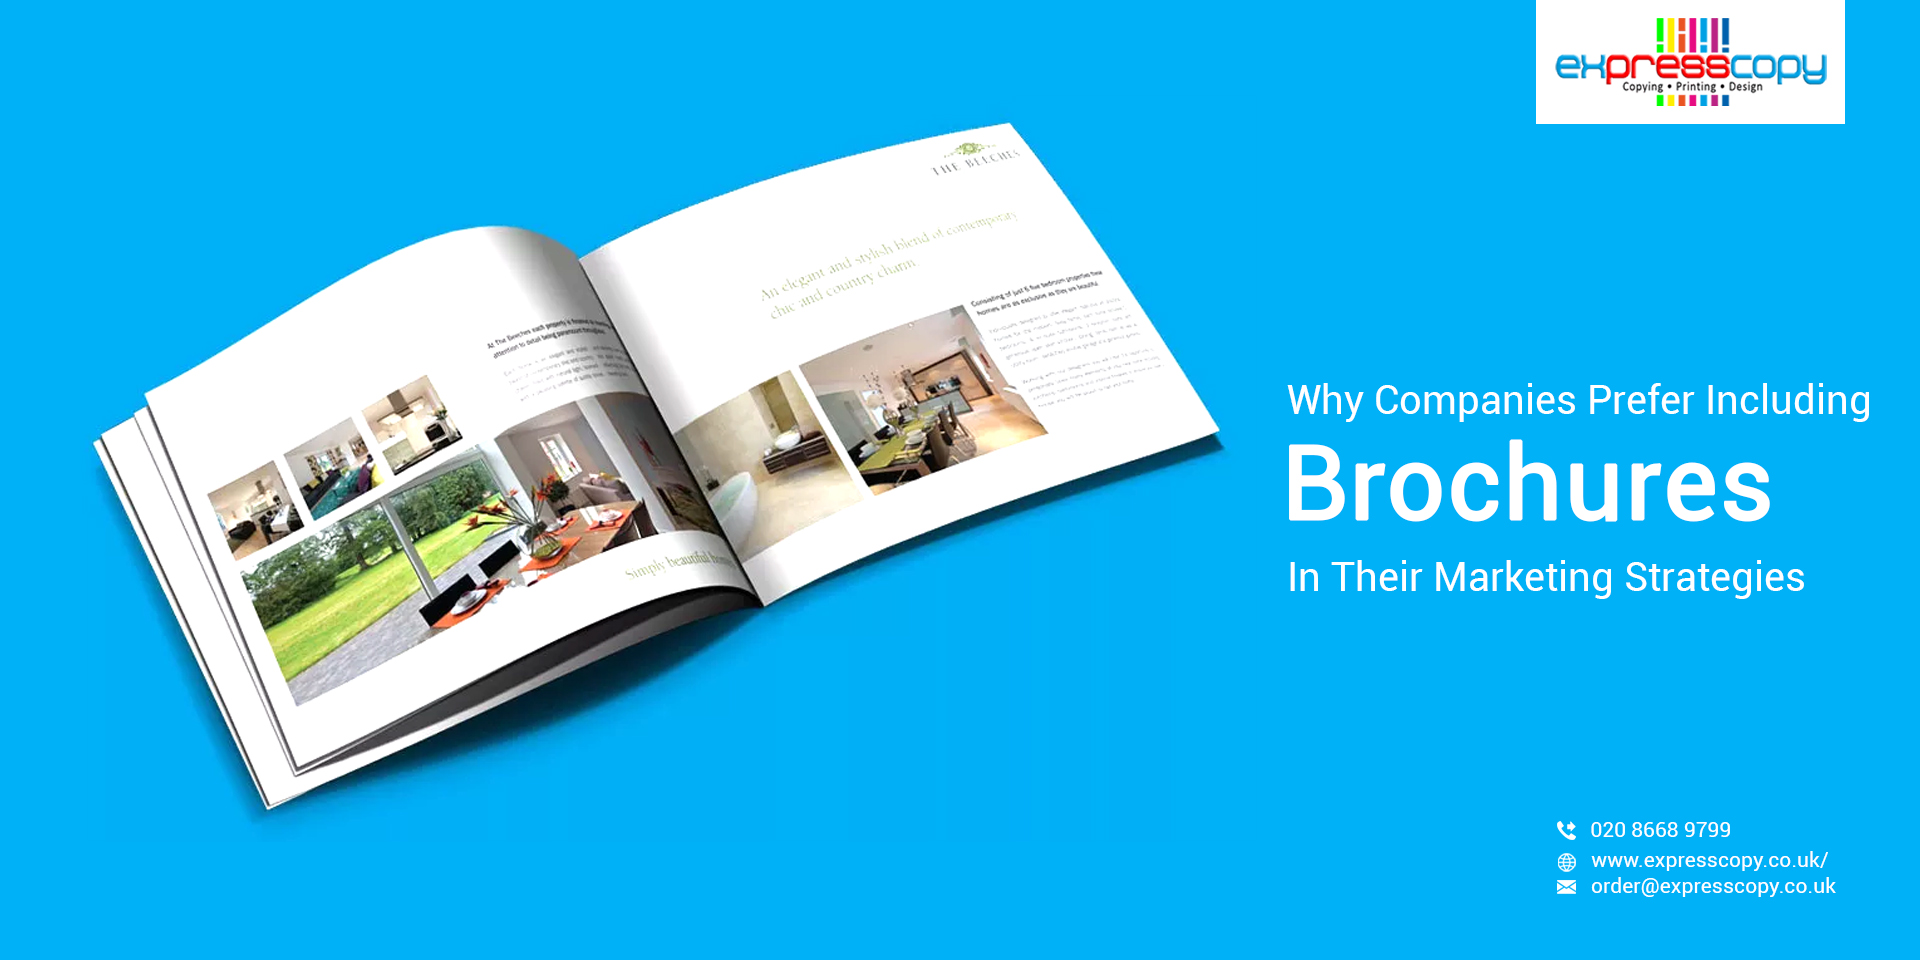 Why Companies Prefer Including Brochures In Their Marketing Strategies